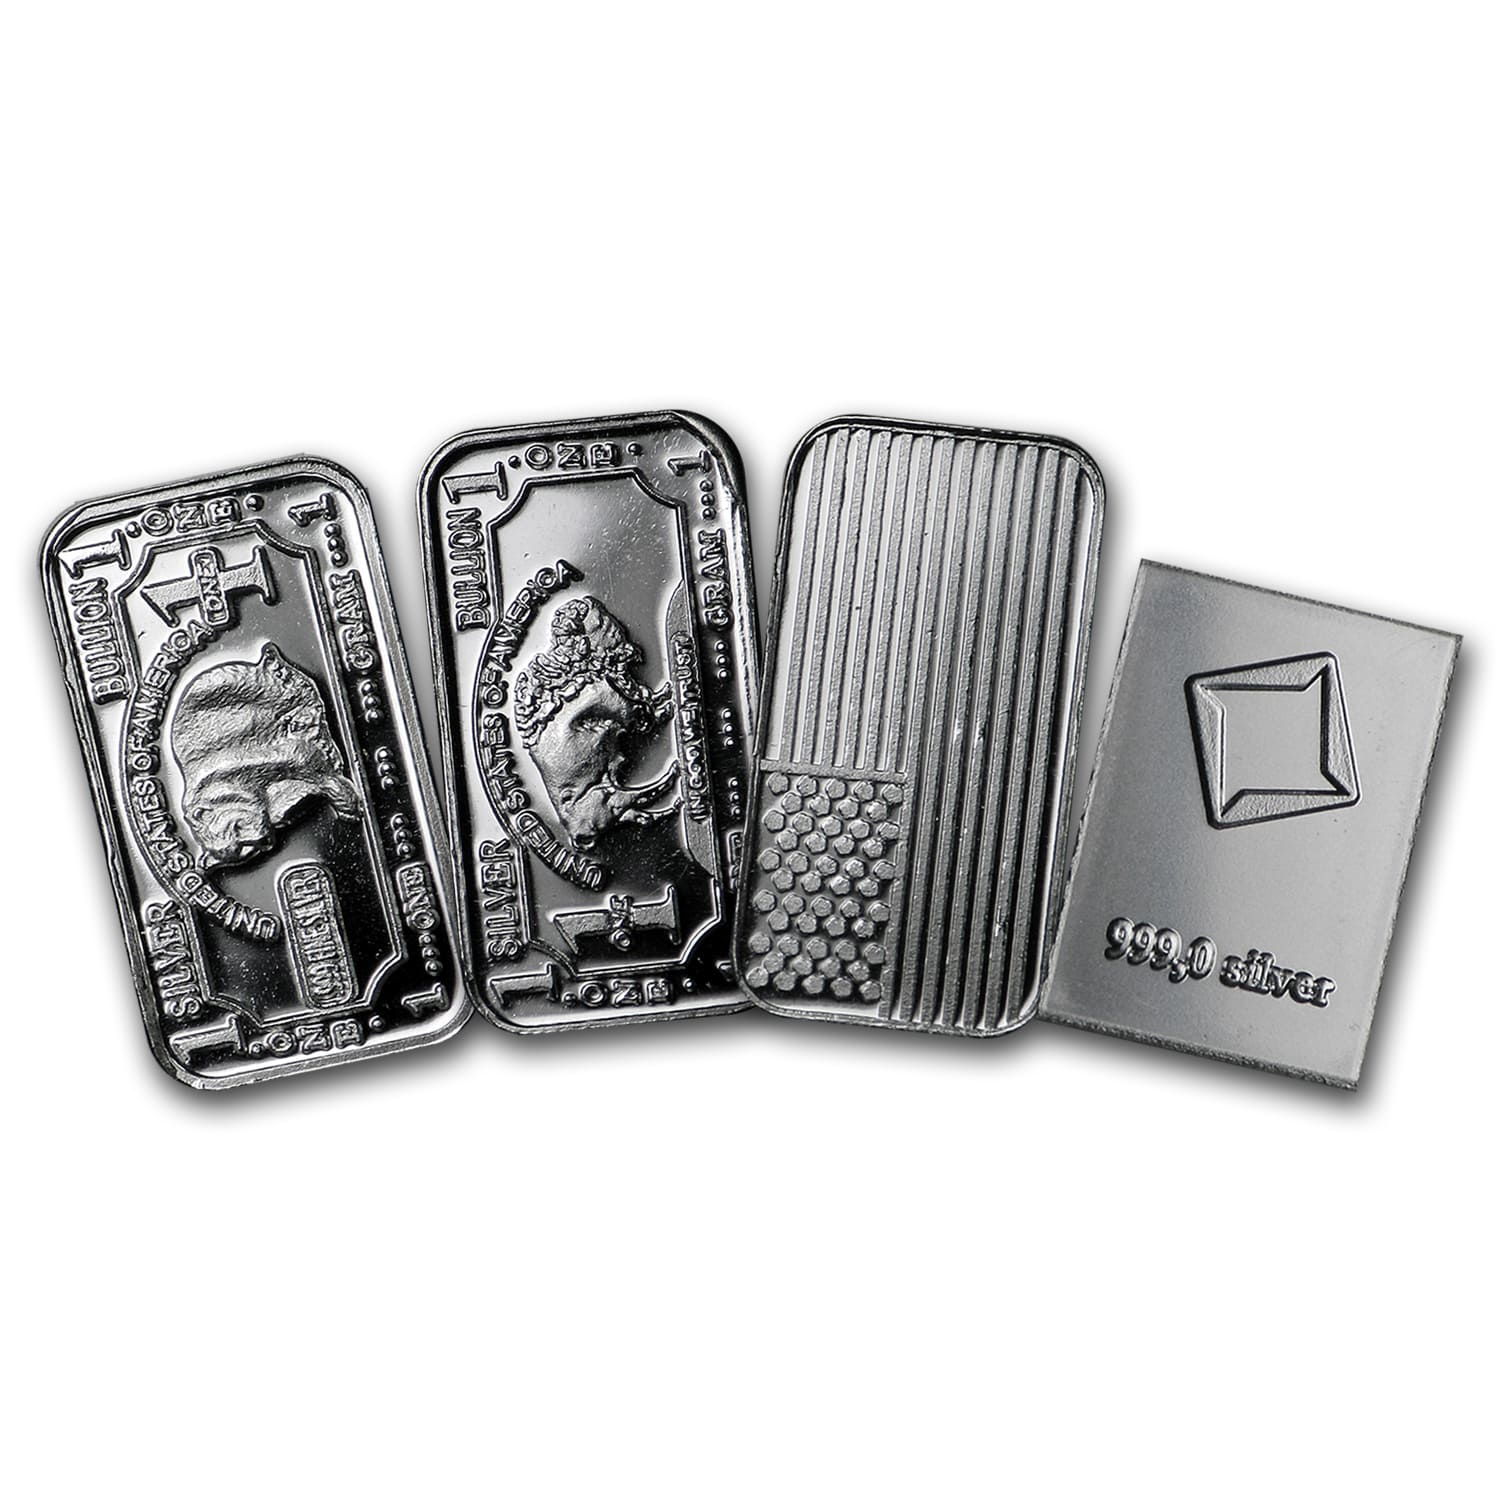 1 gram Silver Bars - Secondary Market